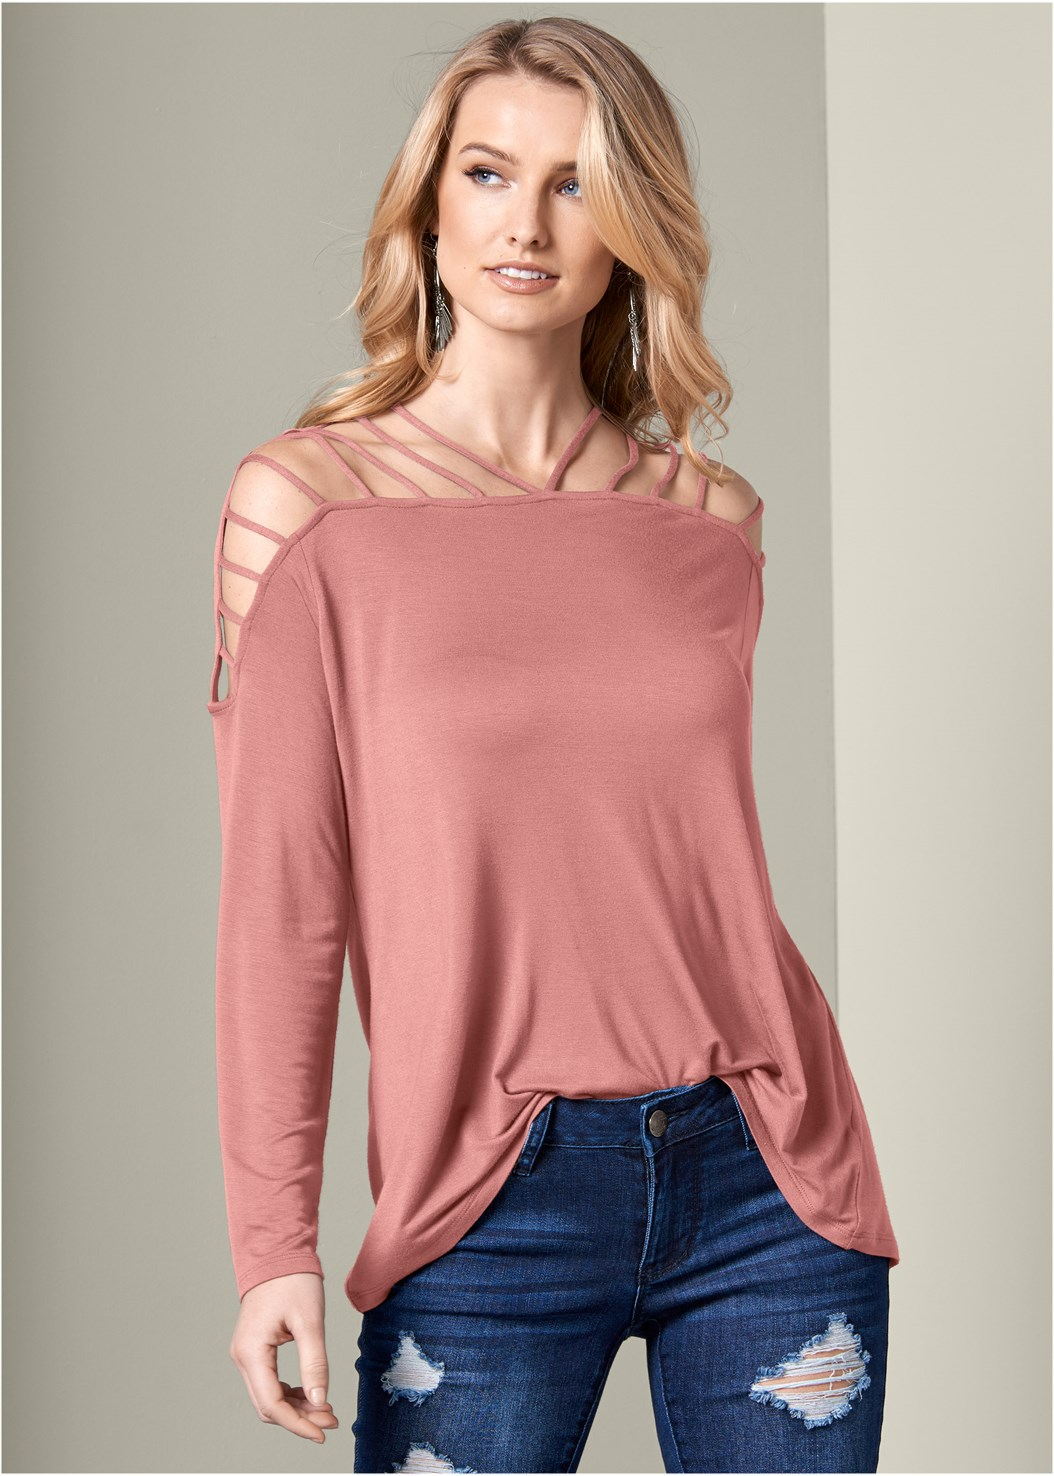 Strappy Detail Top,Ripped Bum Lifter Jeans